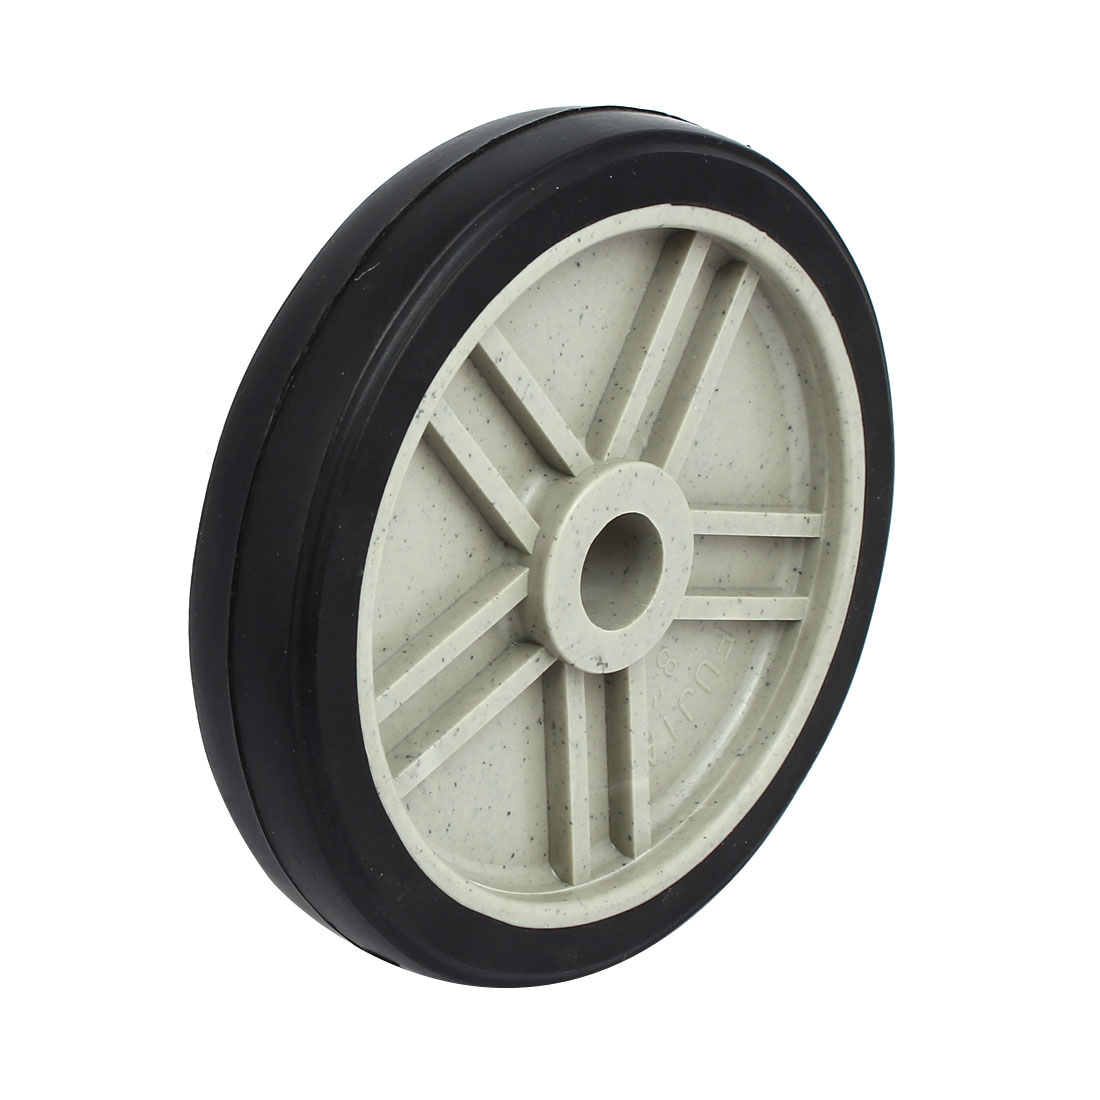 190mm 7.5-inch Dia 25.8mm Inner Bore Plastic Air Compressor Wheel Black